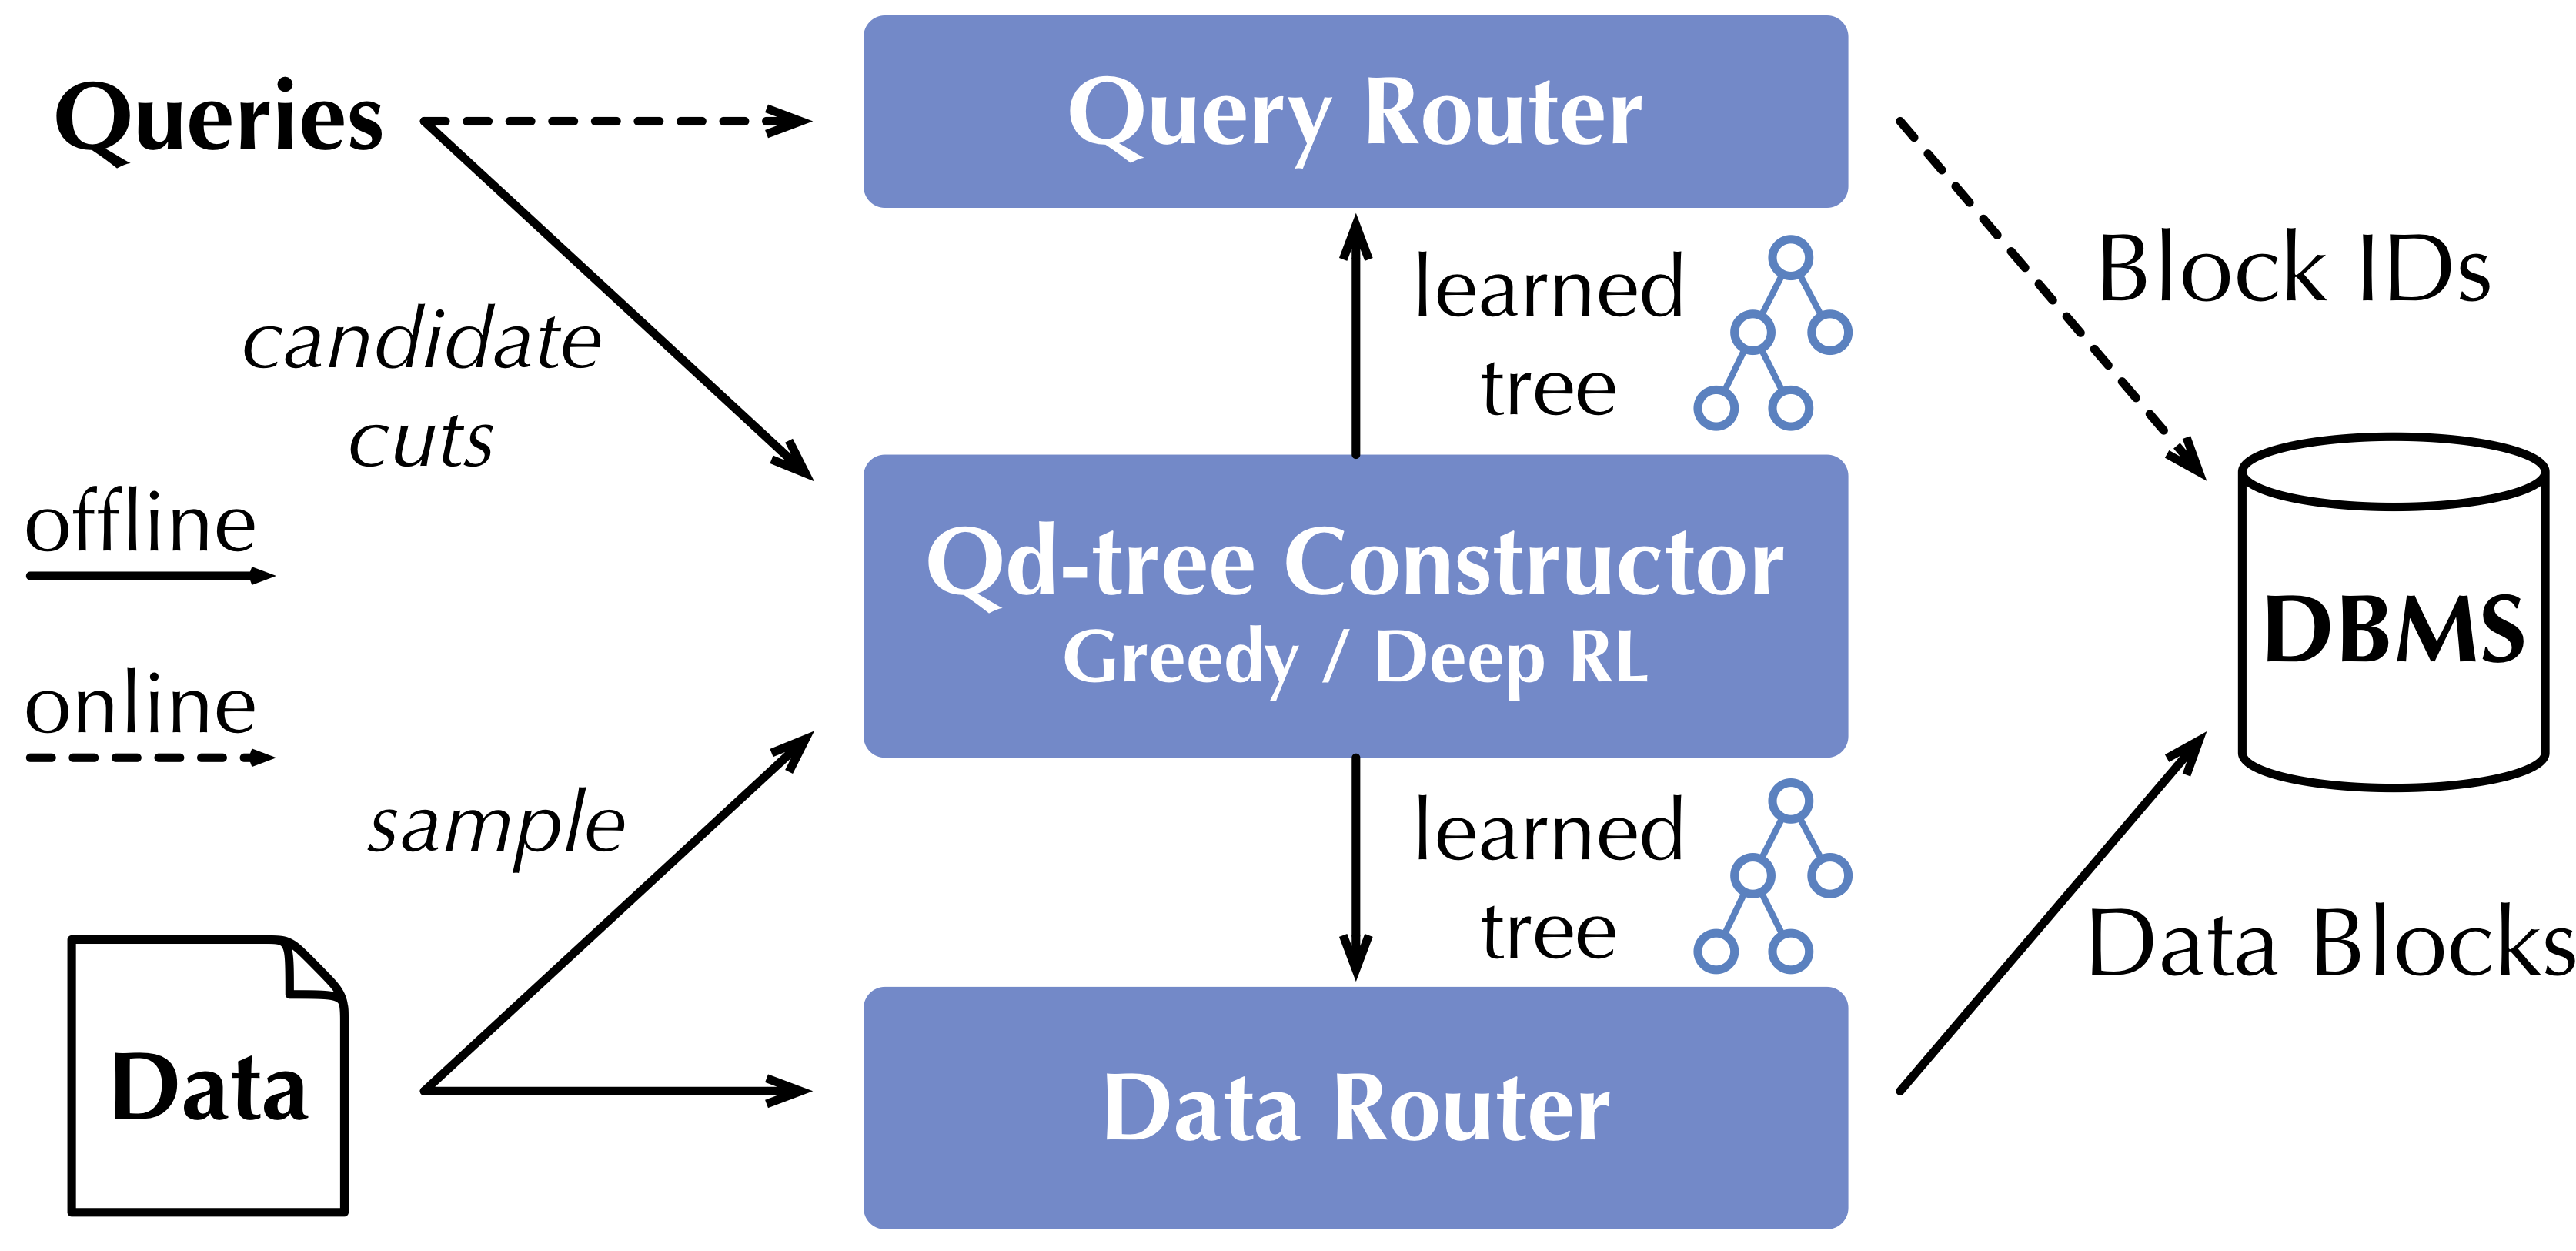 Qd-tree system architecture